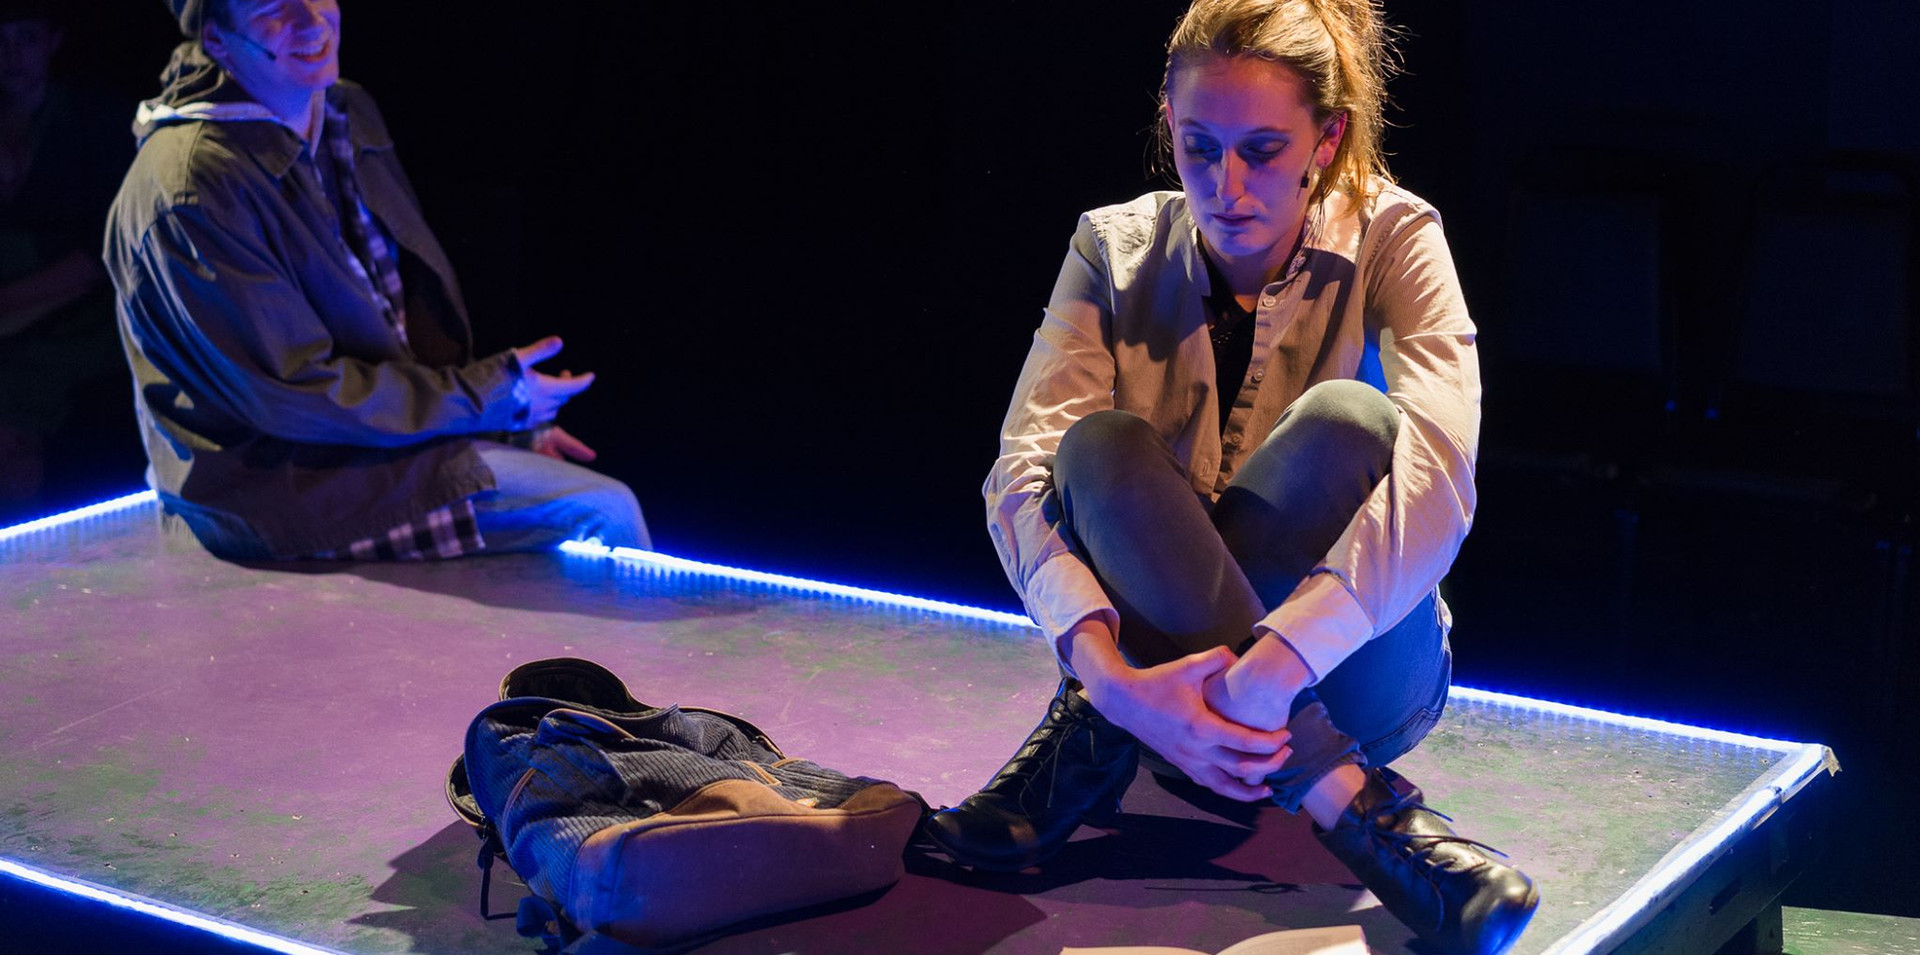 Natalie in Next To Normal